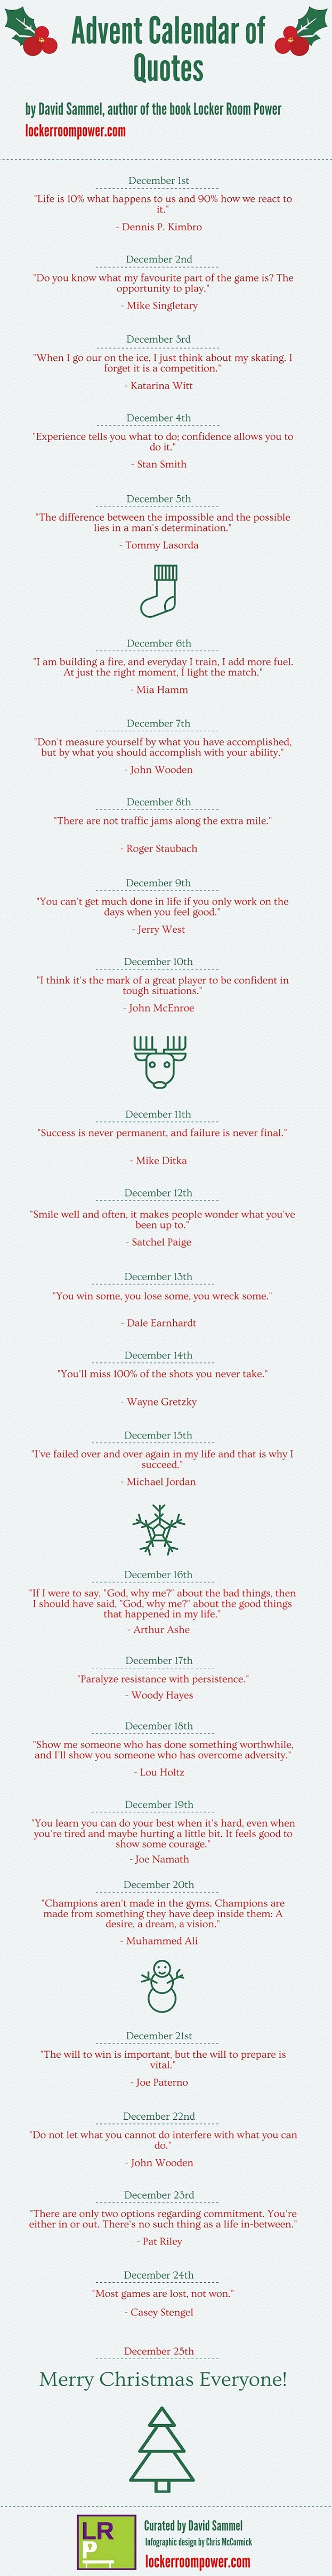 Advent Calendar of Quotes infographic